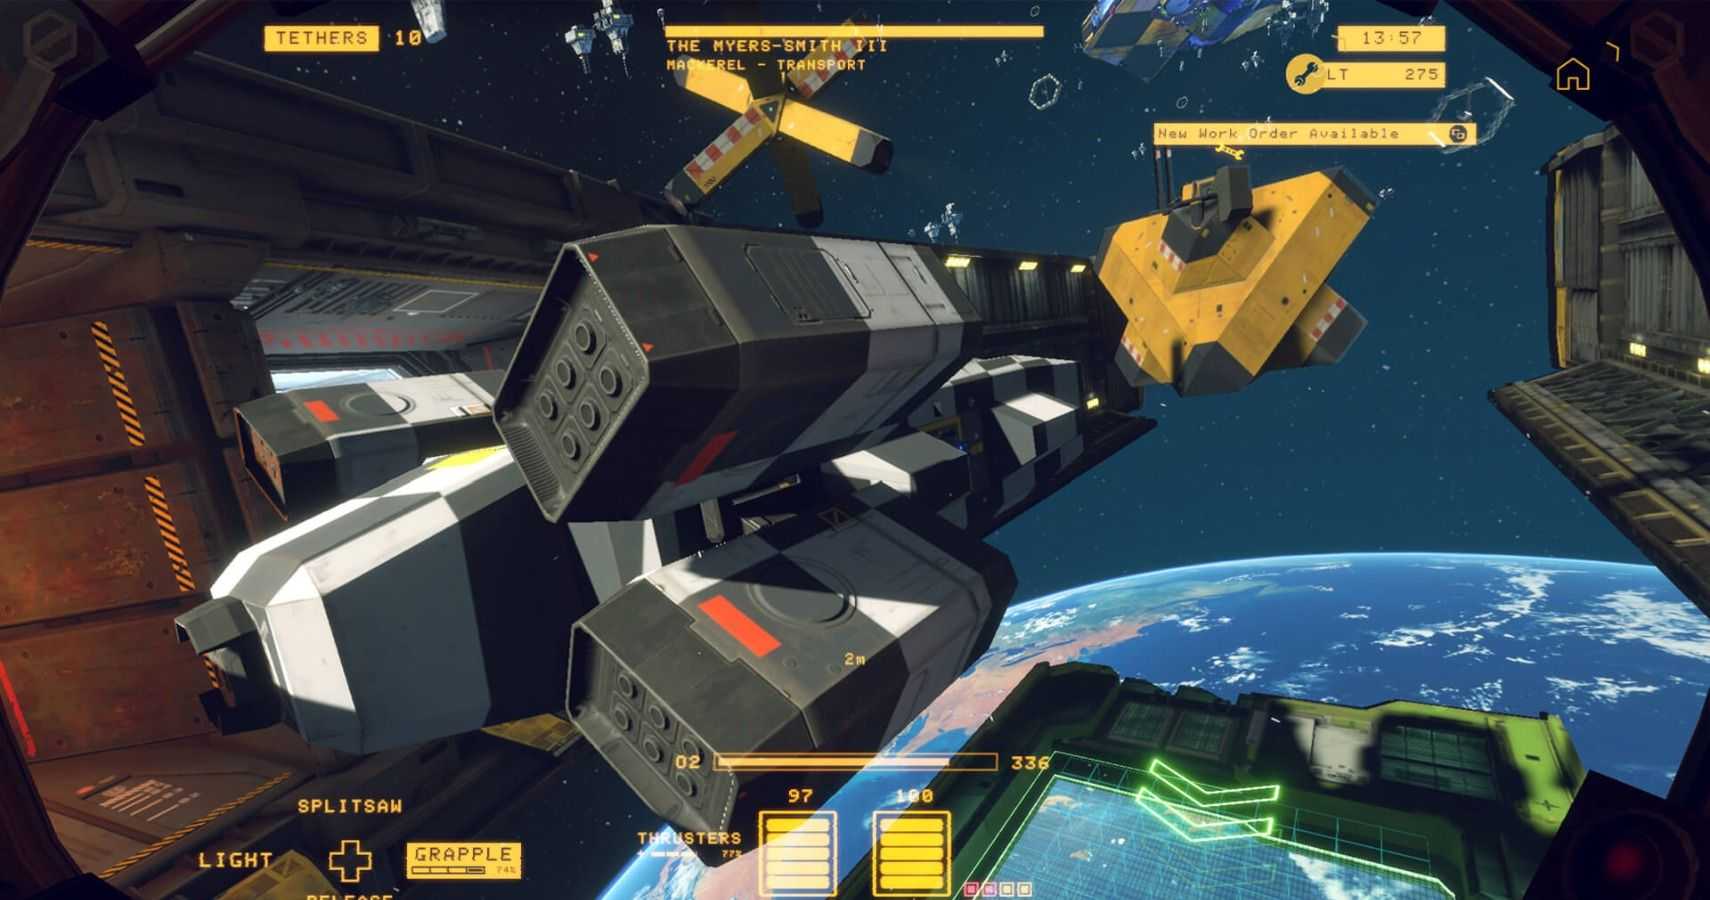 Hardspace: Shipbreaker Is An Extremely Good Game That You Should Play